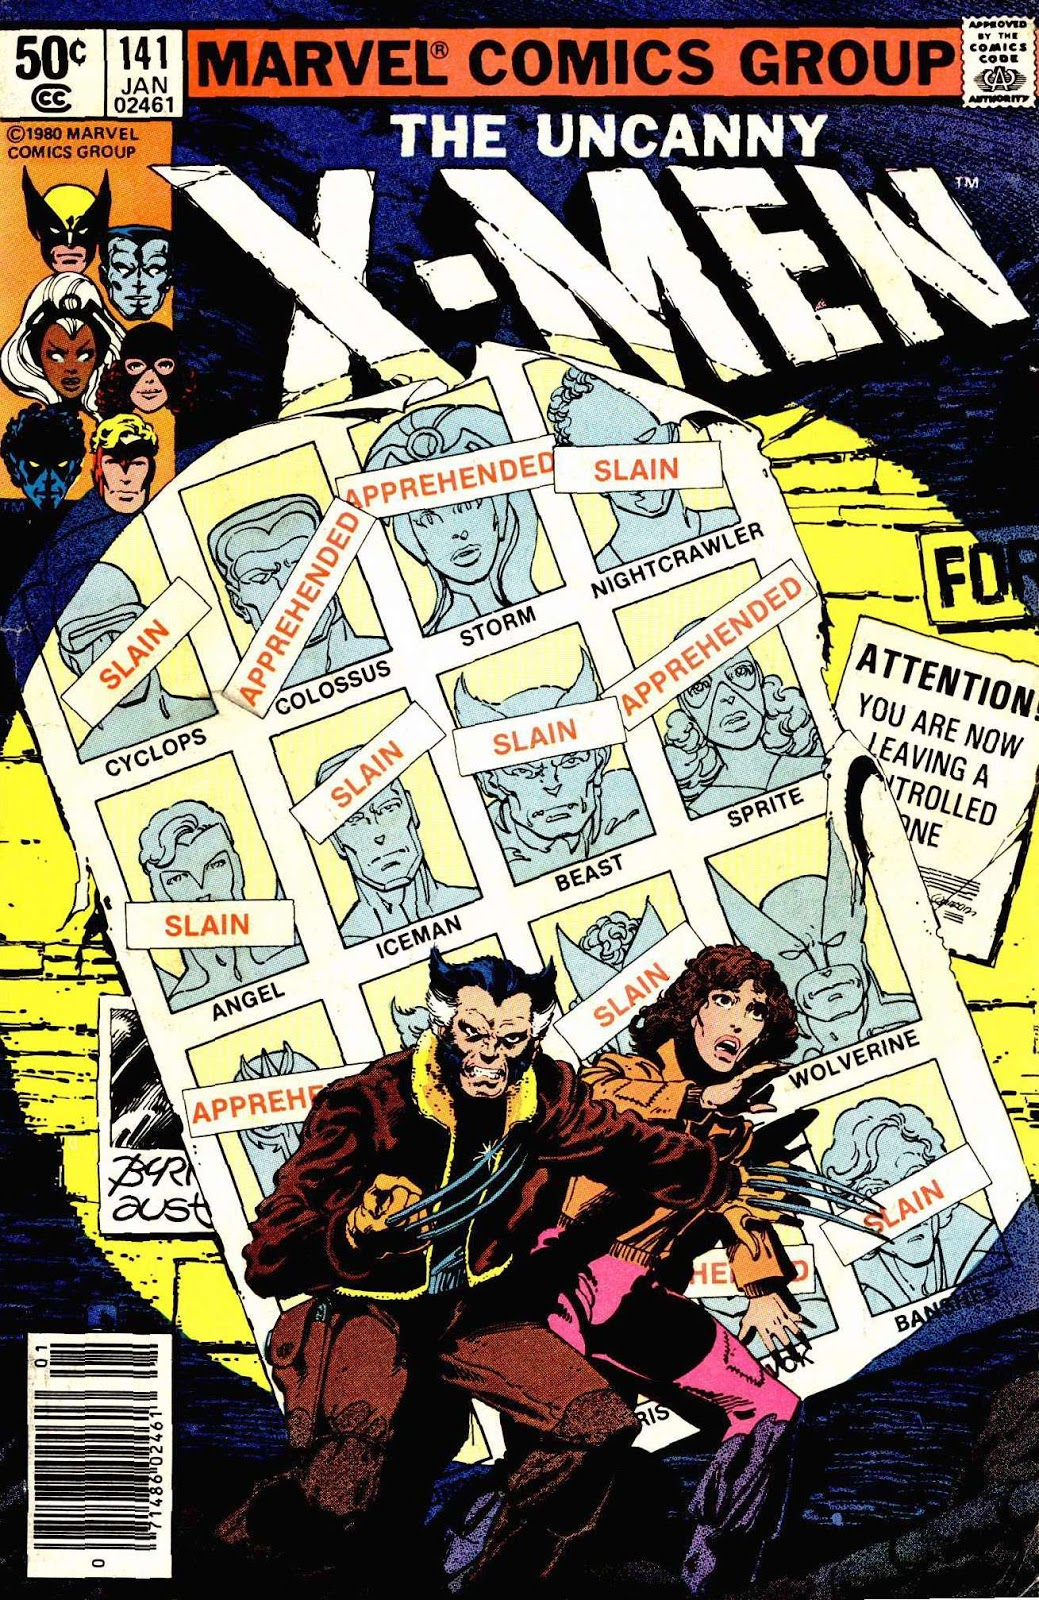 Pictured: the far-flung future of 2013. As envisioned in 1981 comics.